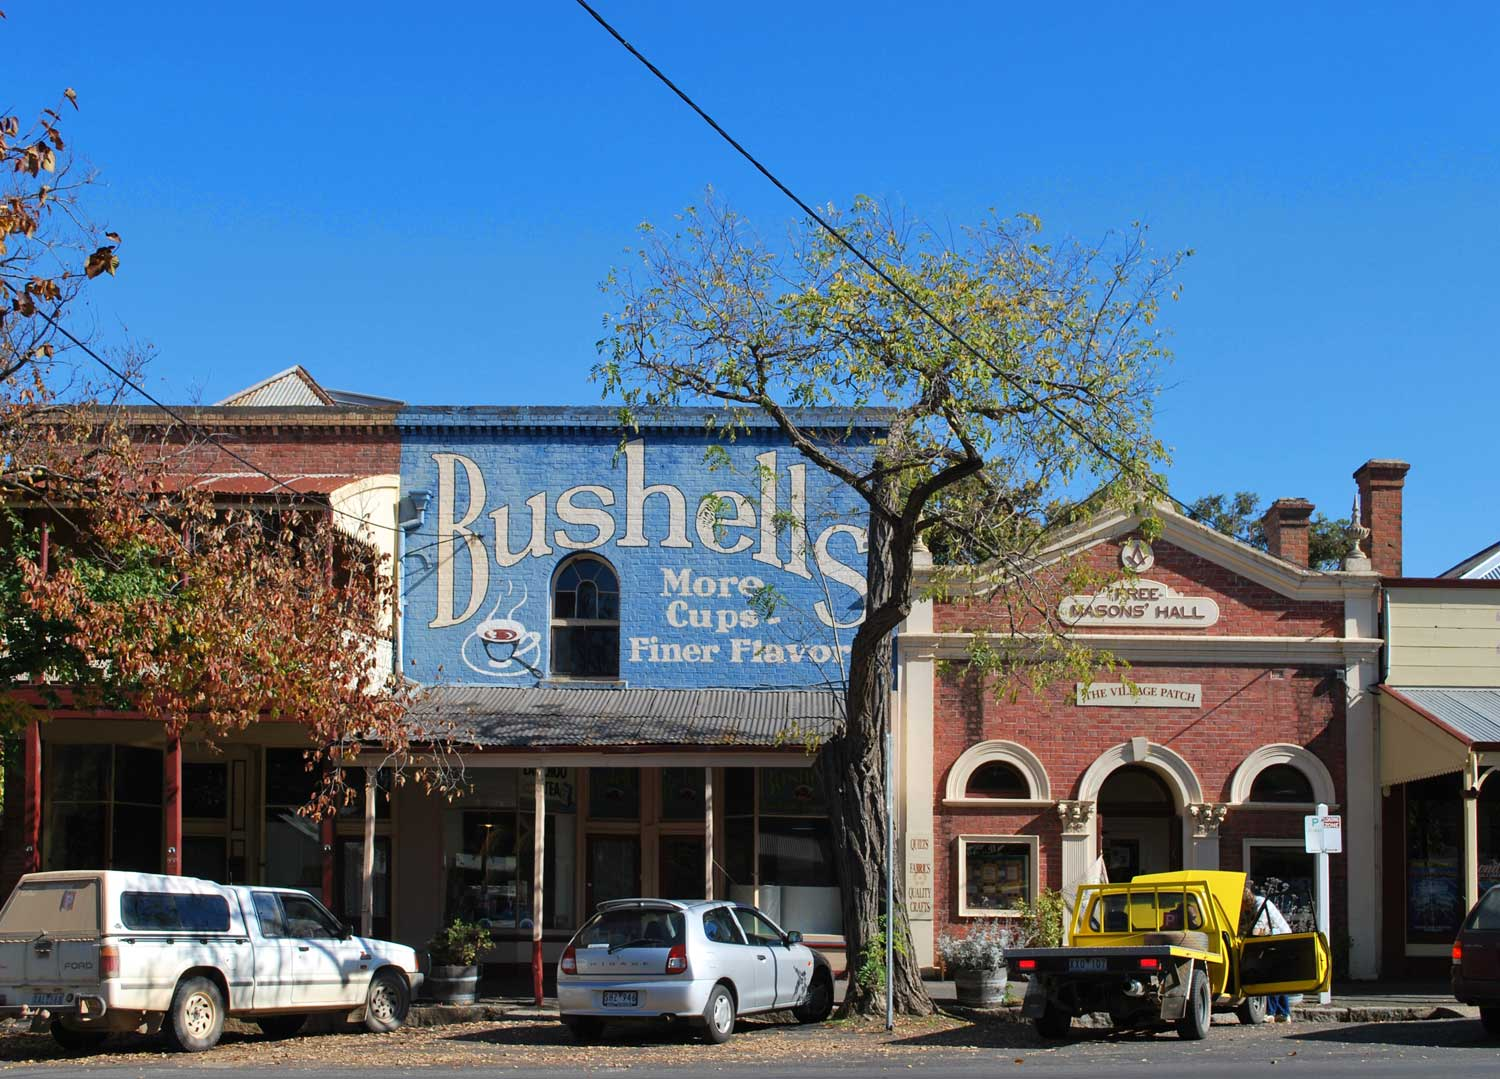 Bushells Tea Advertisement in Maldon. By Matt on Flickr